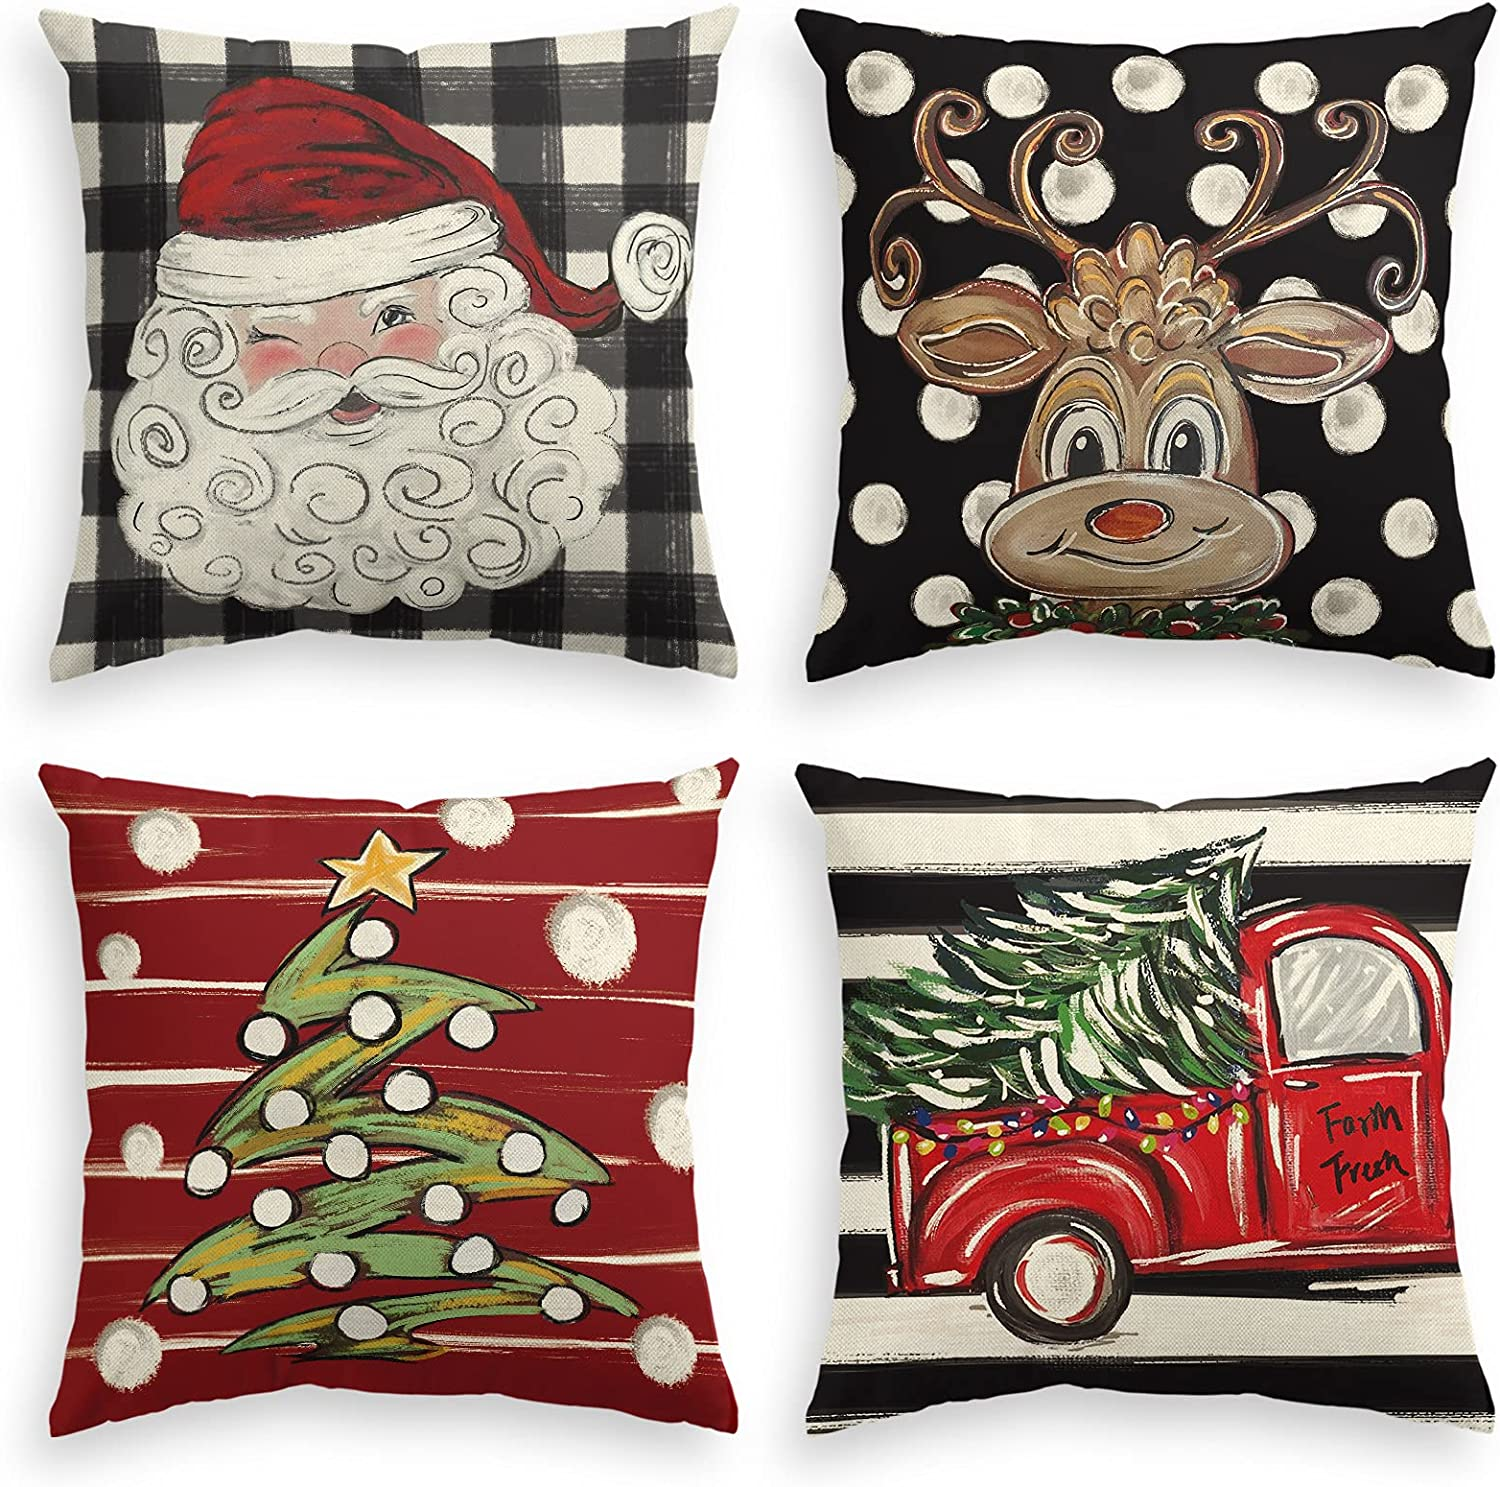 Special price for a limited time AVOIN colorlife Merry Christmas Watercolor R Translated Buffalo Plaid Santa